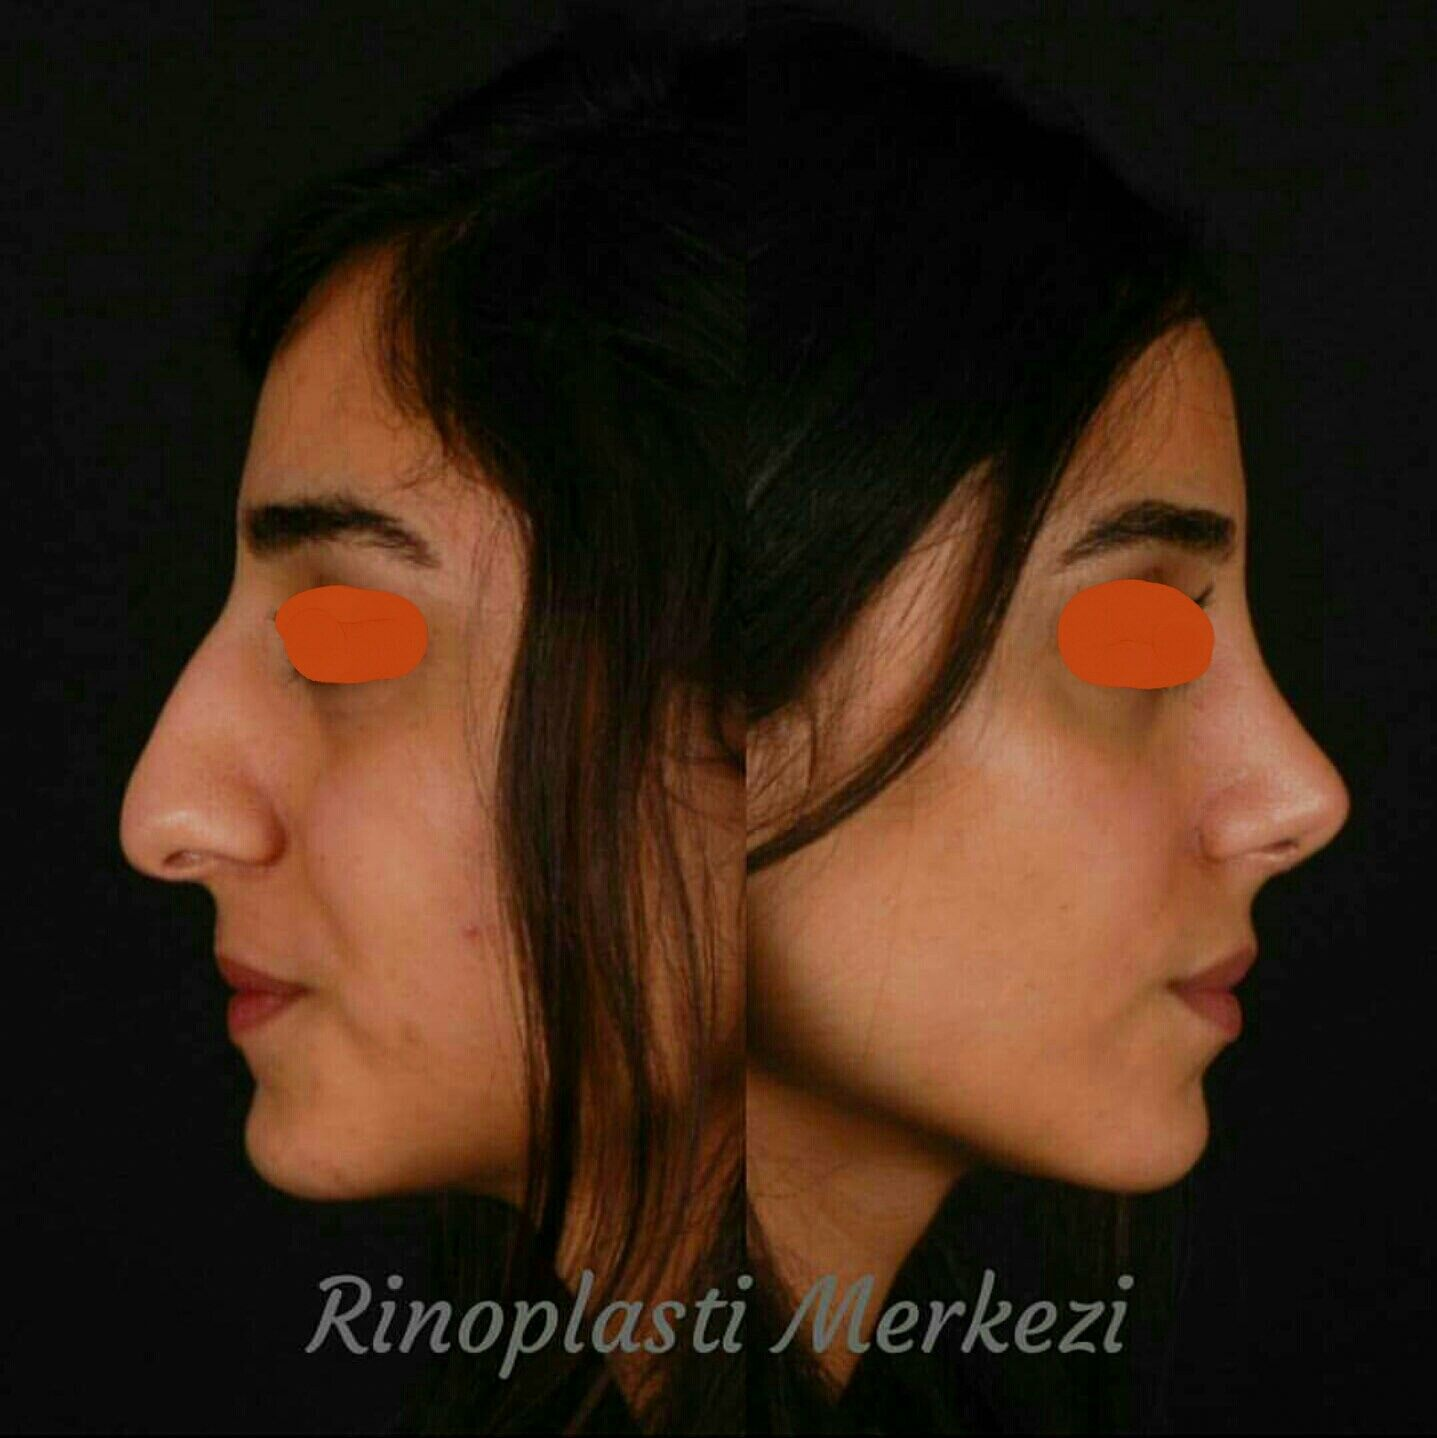 best ideas about nose surgery nose jobs perfect 17 best ideas about nose surgery nose jobs perfect nose and rhinoplasty